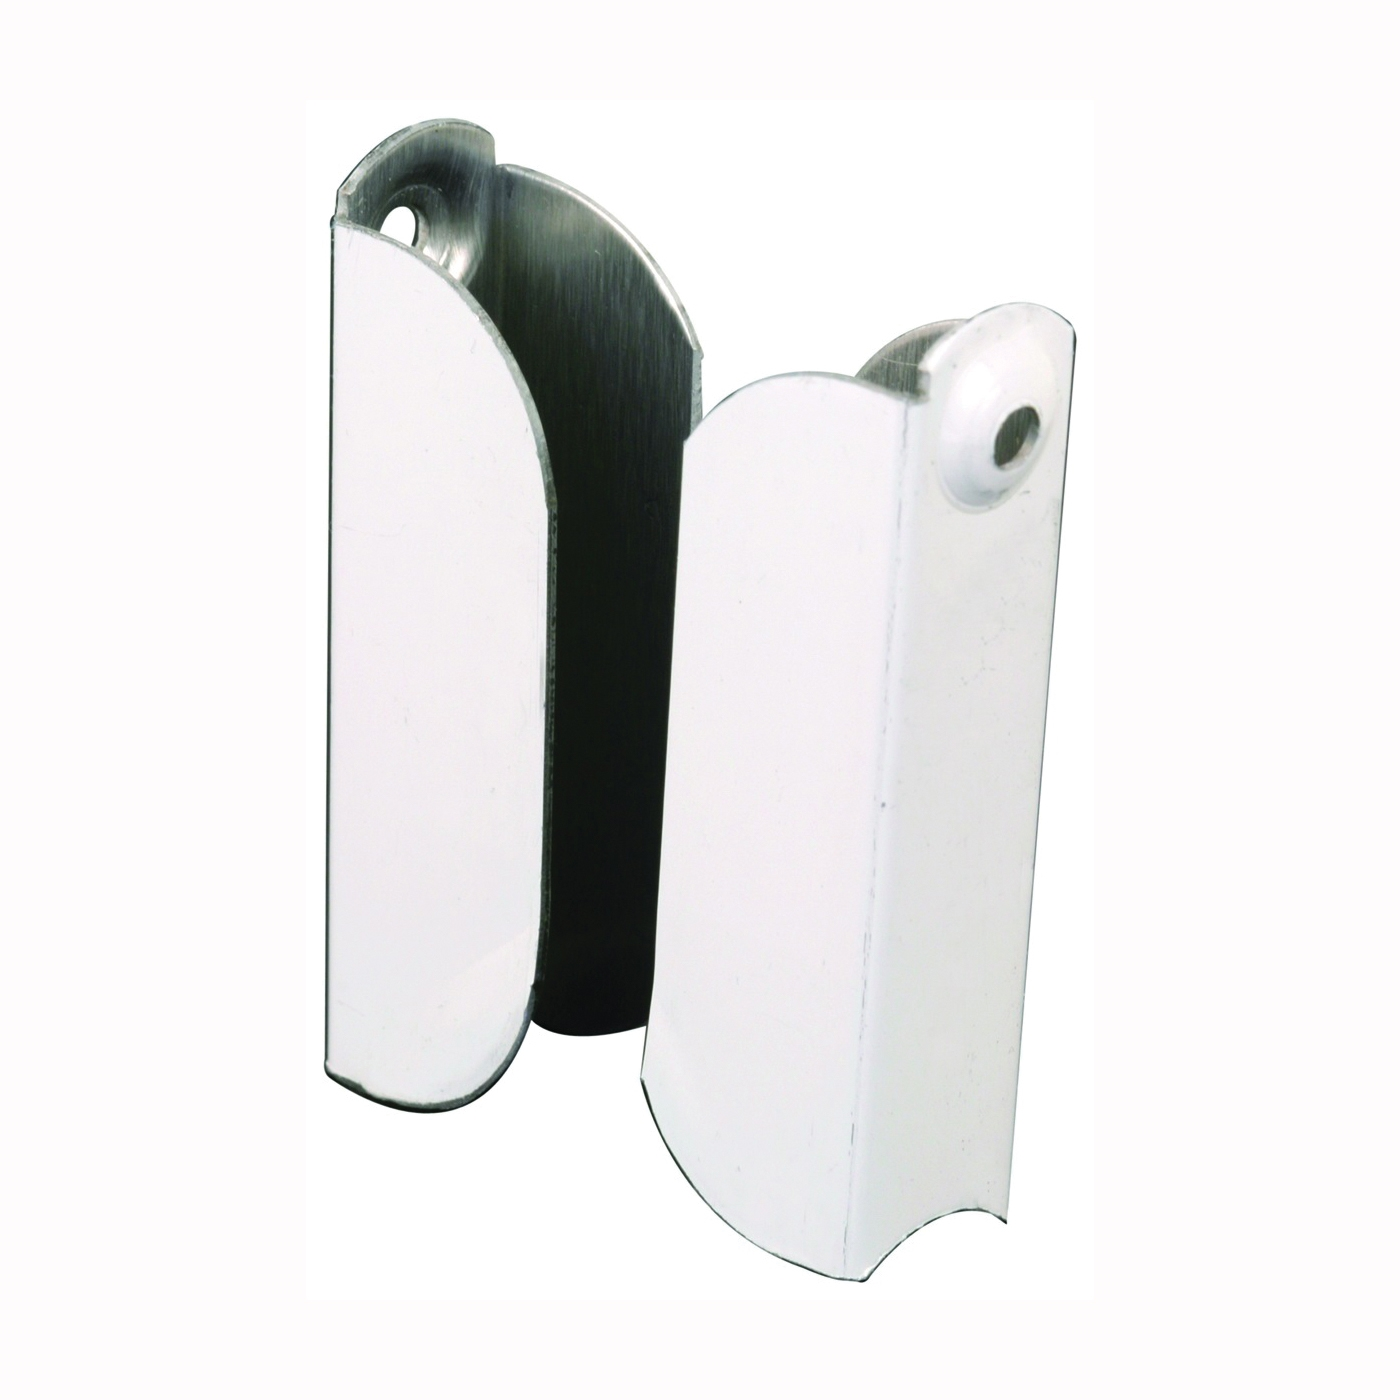 Picture of Make-2-Fit PL 7845 Screen Frame Top Hanger, Aluminum, Painted, White, For: 7/16 in Screen Frame